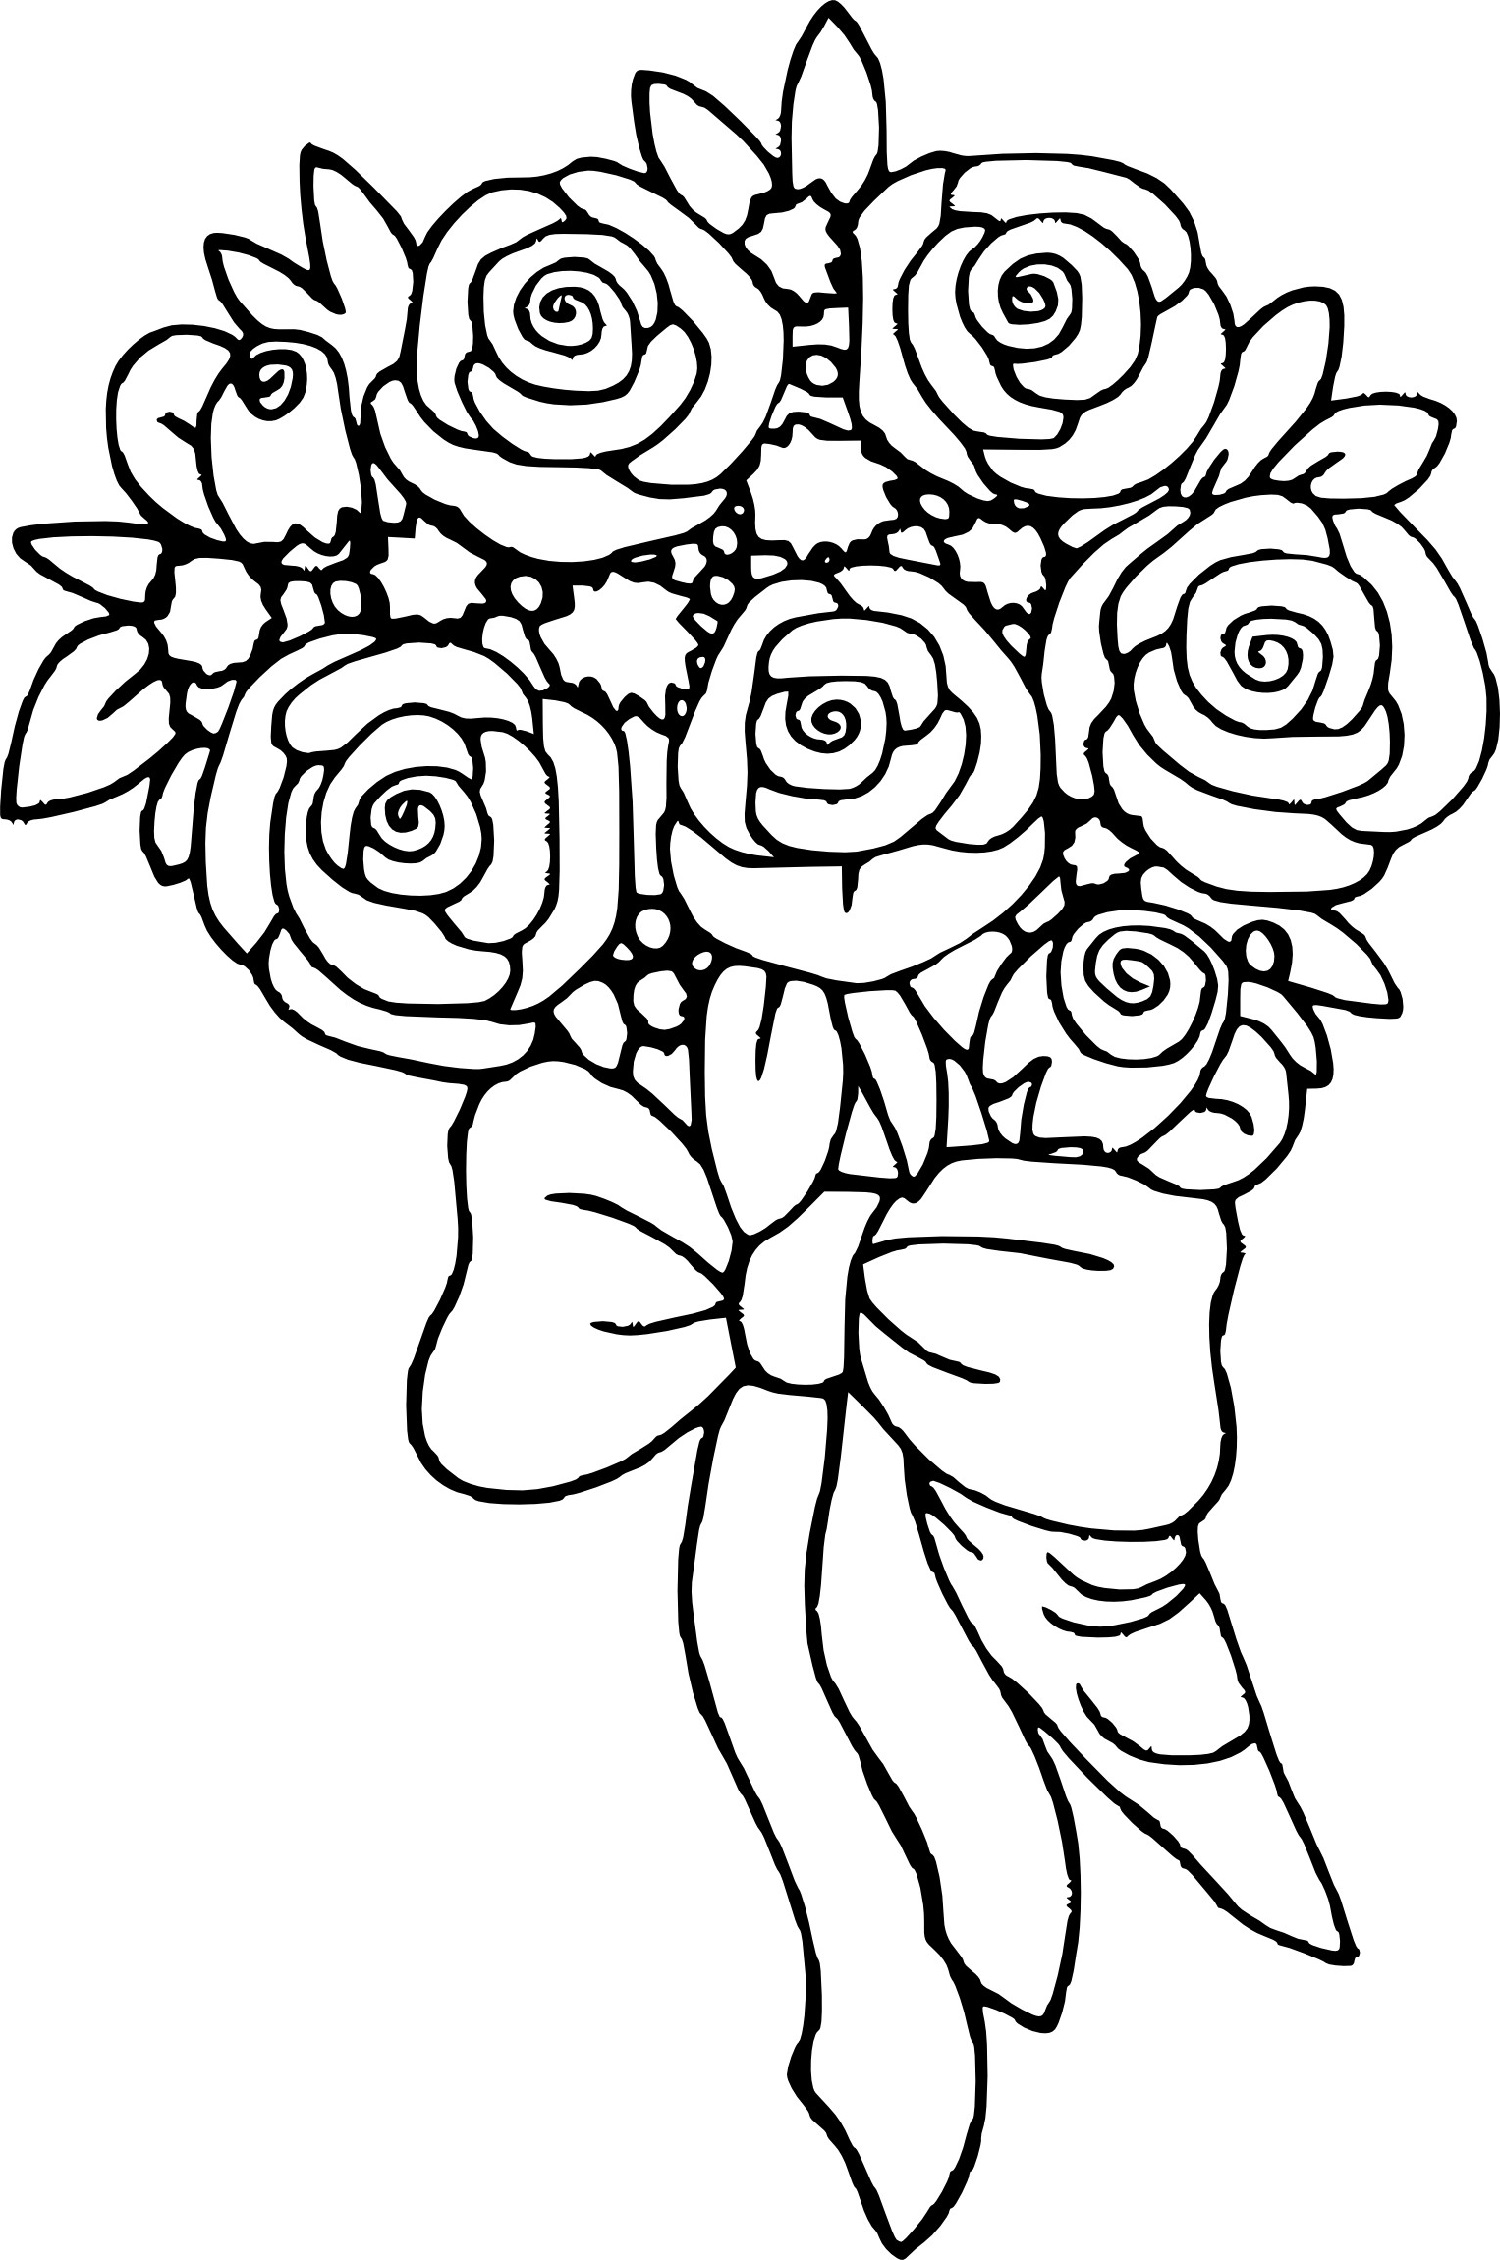 red rose rose coloring pages roses coloring pages coloring pages to print red pages coloring rose rose